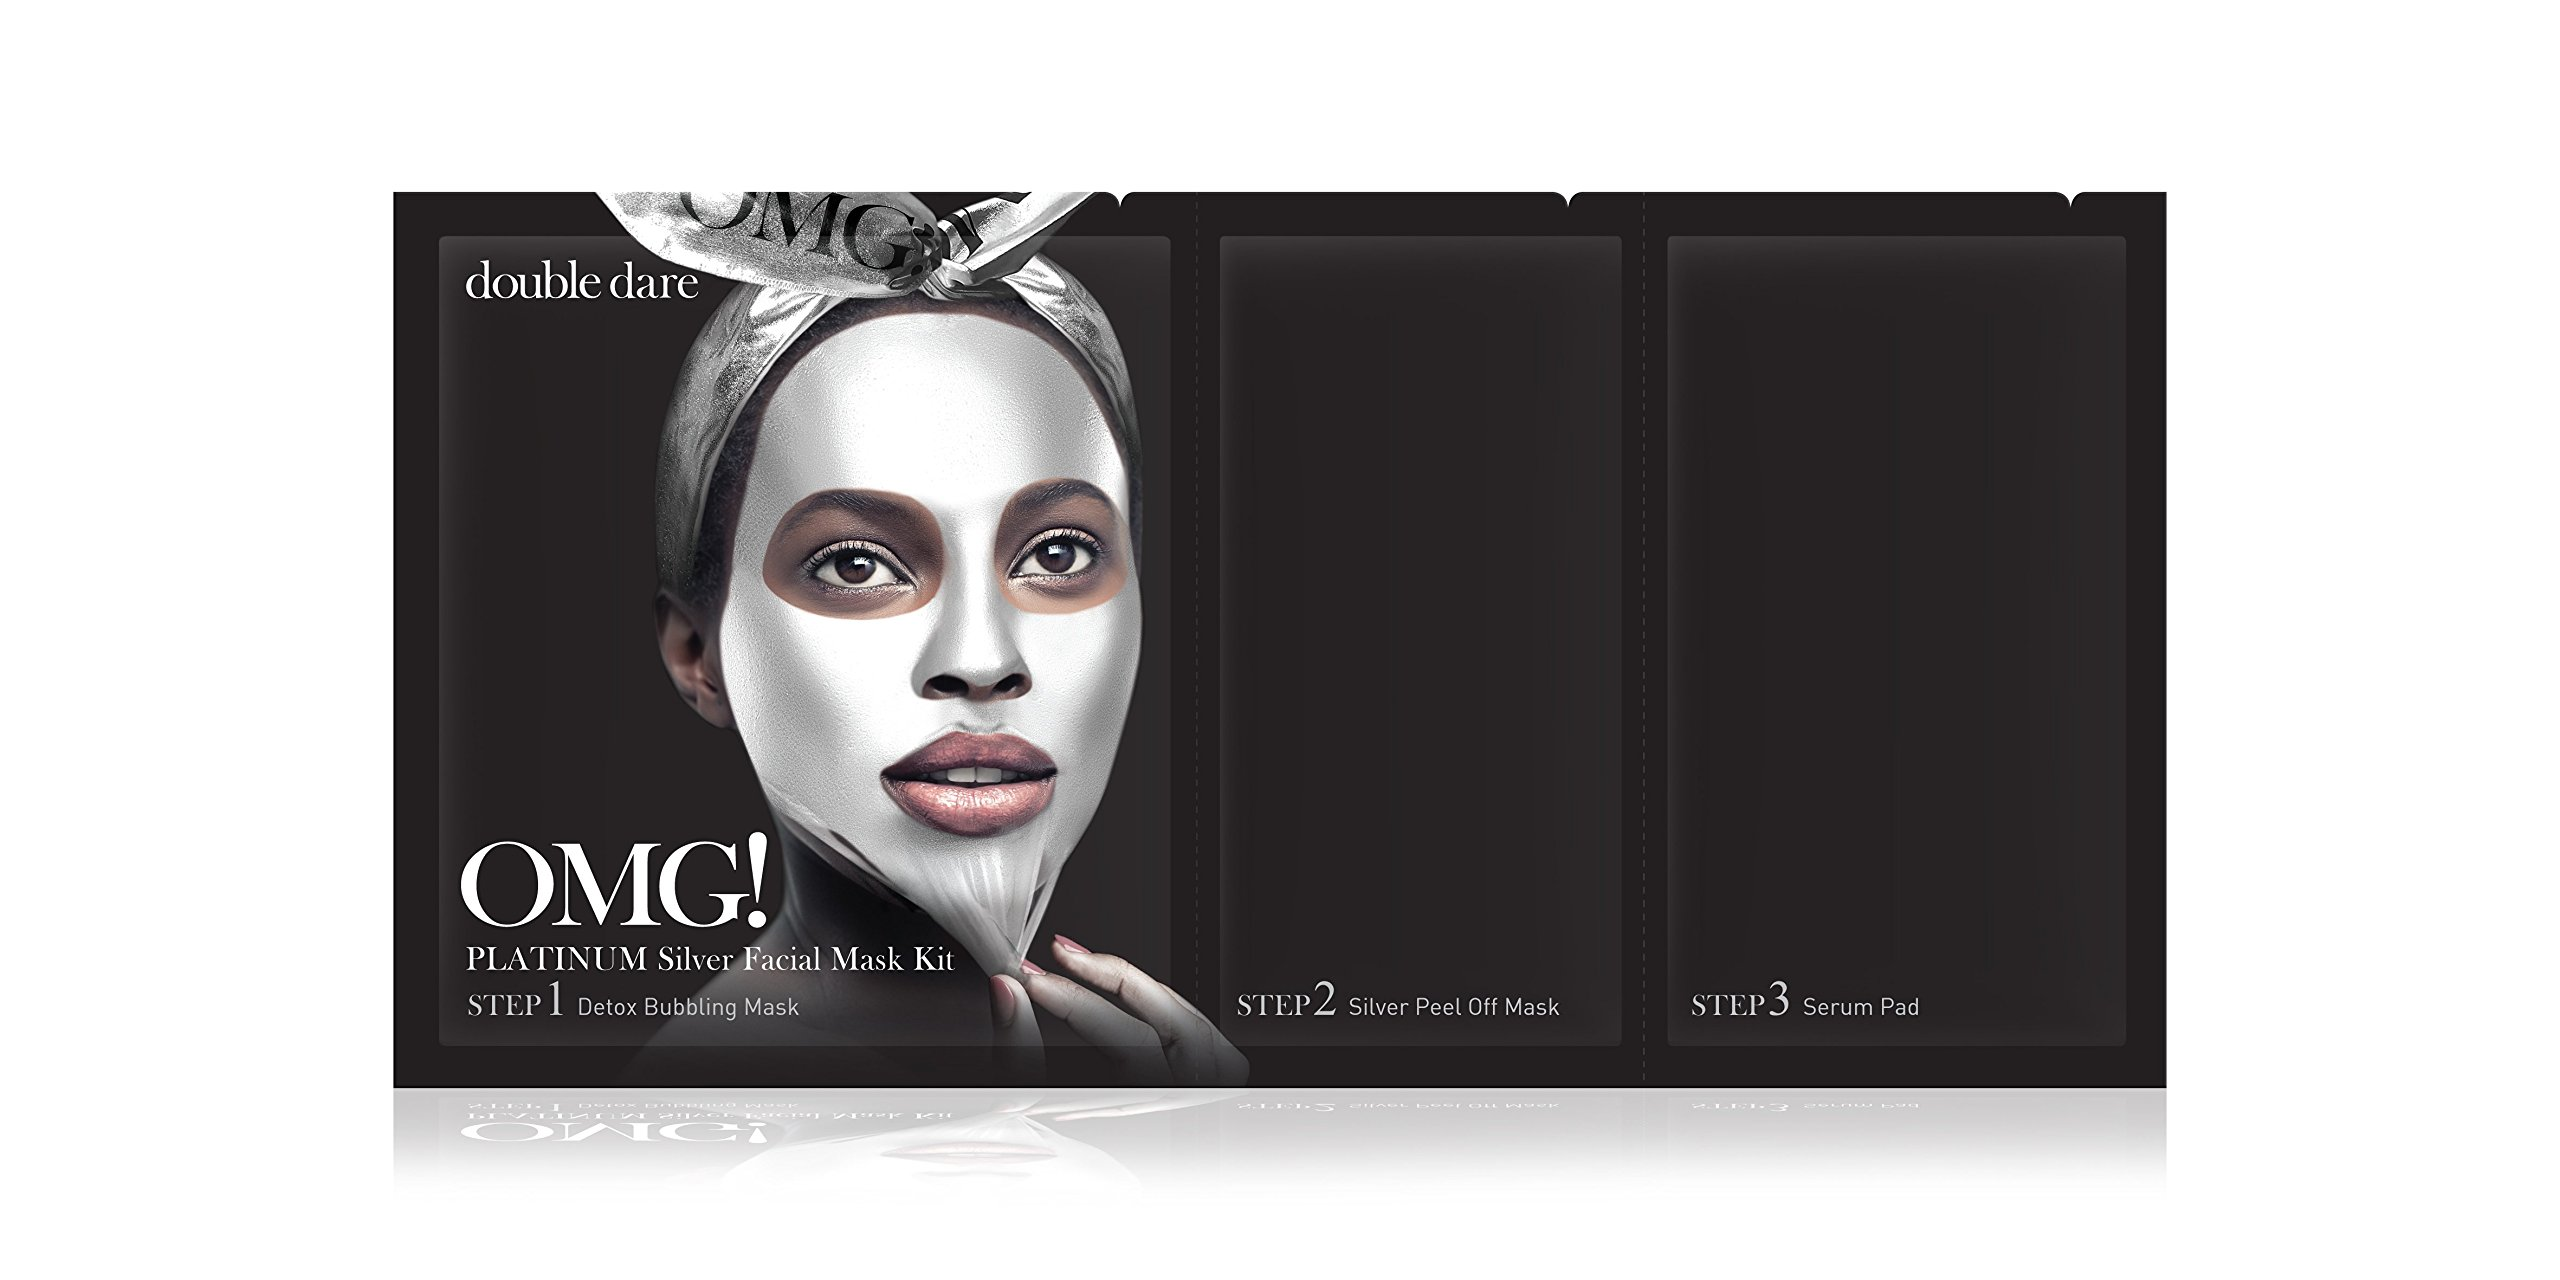 double dare OMG! Platinum Silver Facial Mask Kit - Brightening and Skin Regeneration with Diamond Powder